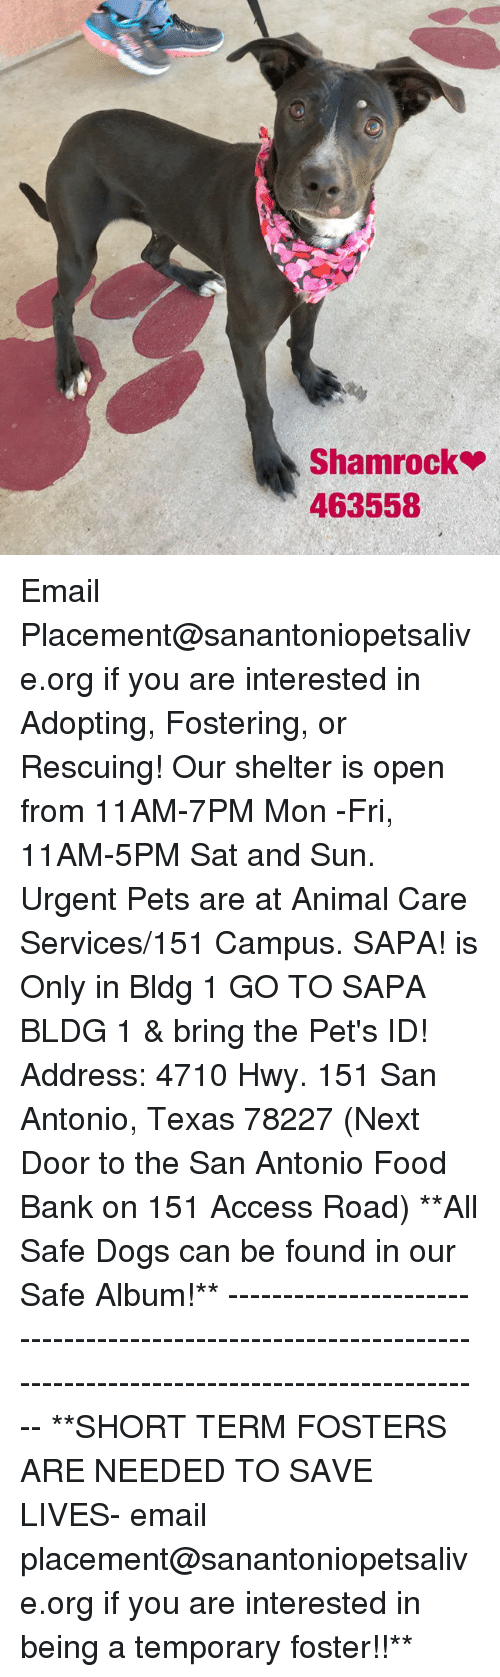 Dogs, Food, and Memes: Shamrock  463558 Email Placement@sanantoniopetsalive.org if you are interested in Adopting, Fostering, or Rescuing!  Our shelter is open from 11AM-7PM Mon -Fri, 11AM-5PM Sat and Sun.  Urgent Pets are at Animal Care Services/151 Campus. SAPA! is Only in Bldg 1 GO TO SAPA BLDG 1 & bring the Pet's ID! Address: 4710 Hwy. 151 San Antonio, Texas 78227 (Next Door to the San Antonio Food Bank on 151 Access Road)  **All Safe Dogs can be found in our Safe Album!** ---------------------------------------------------------------------------------------------------------- **SHORT TERM FOSTERS ARE NEEDED TO SAVE LIVES- email placement@sanantoniopetsalive.org if you are interested in being a temporary foster!!**